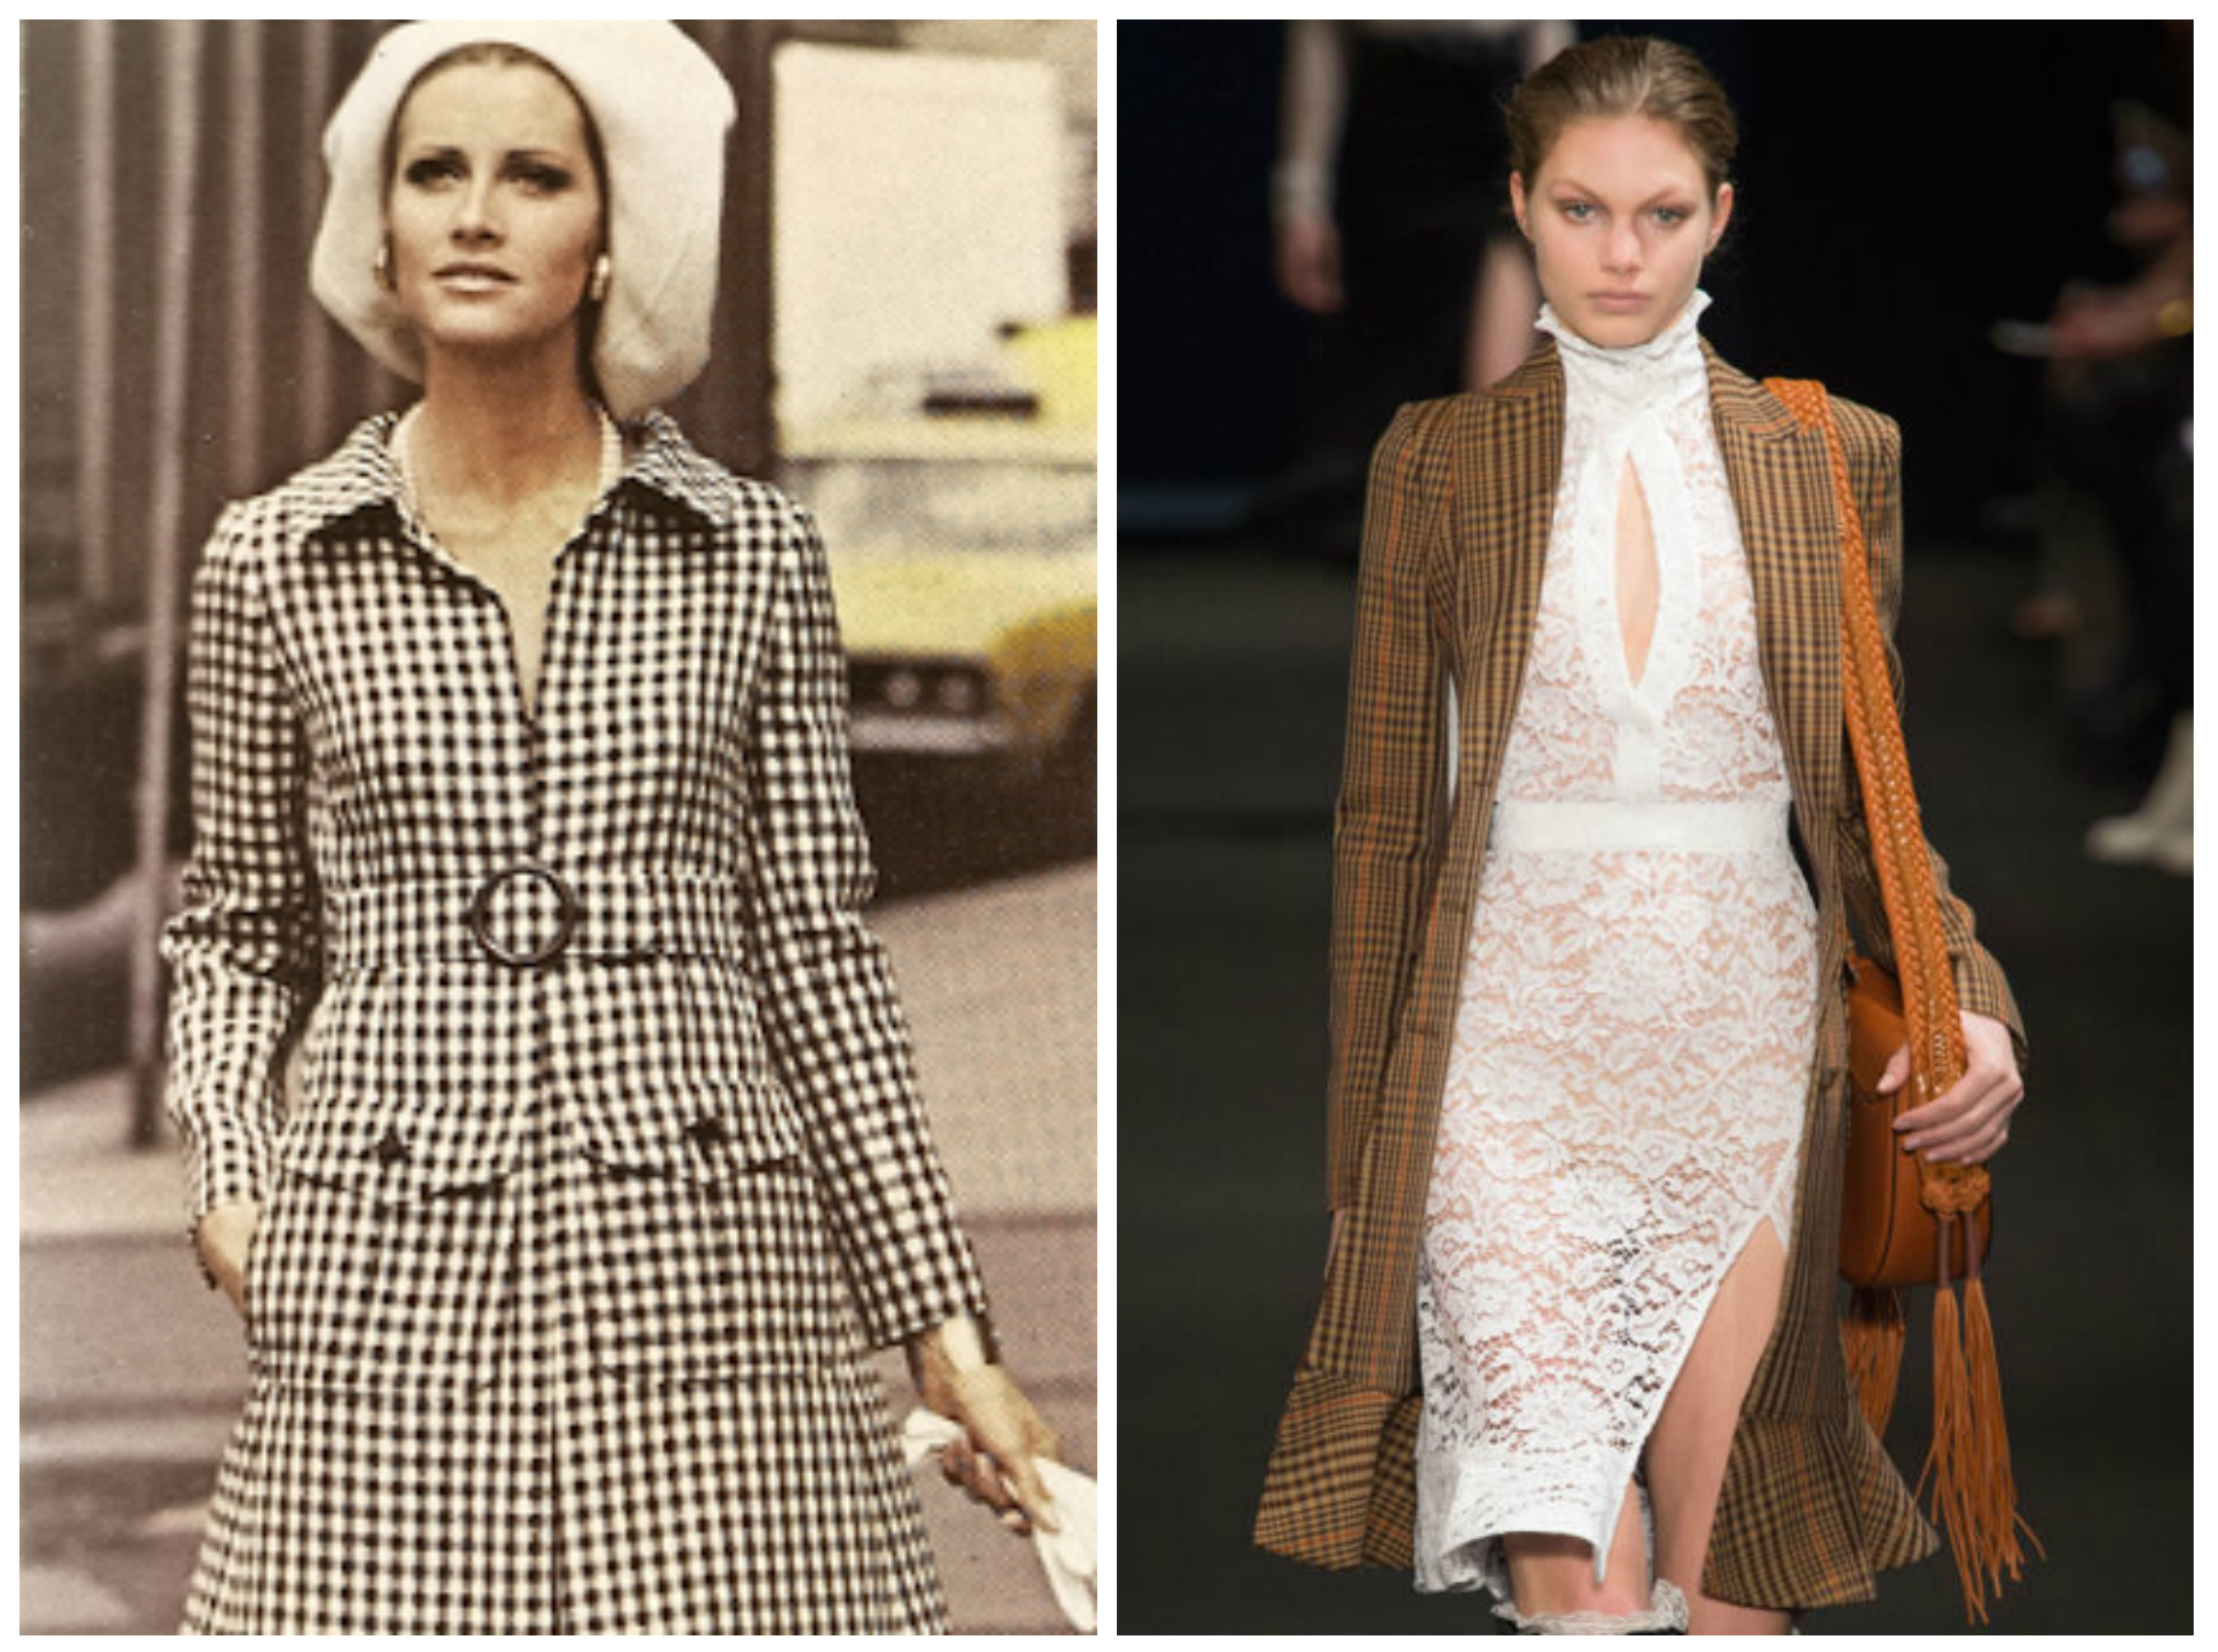 From left to right: Houndstooth dress by James Galanos featured in the Spring 1970 edition of V ogue and Altuzarra's collection for New York Fashion Week, Fall 2015.